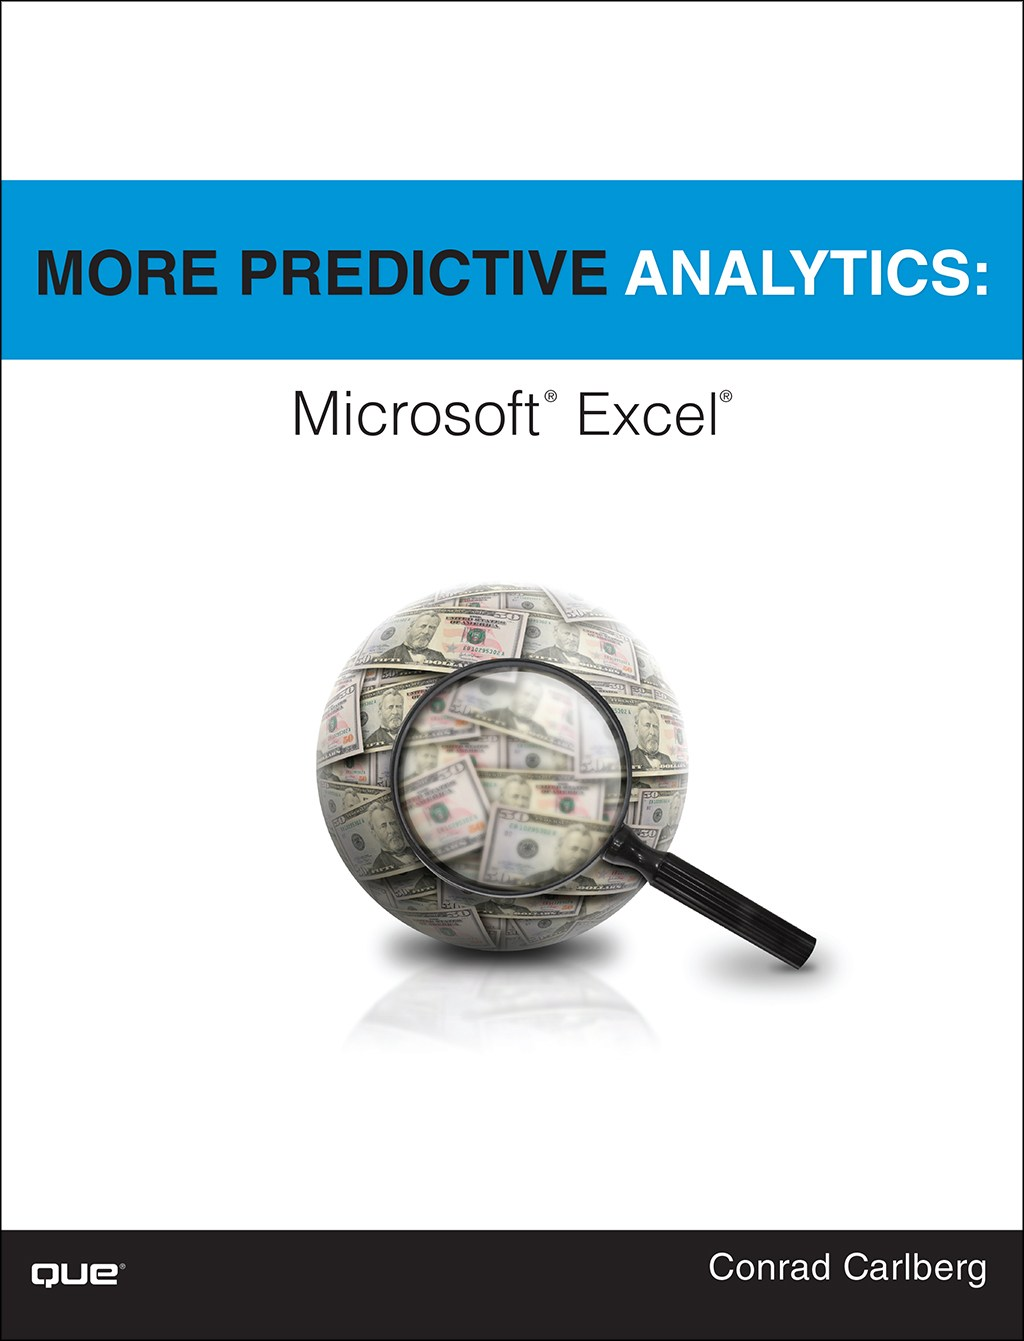 More Predictive Analytics: Microsoft Excel